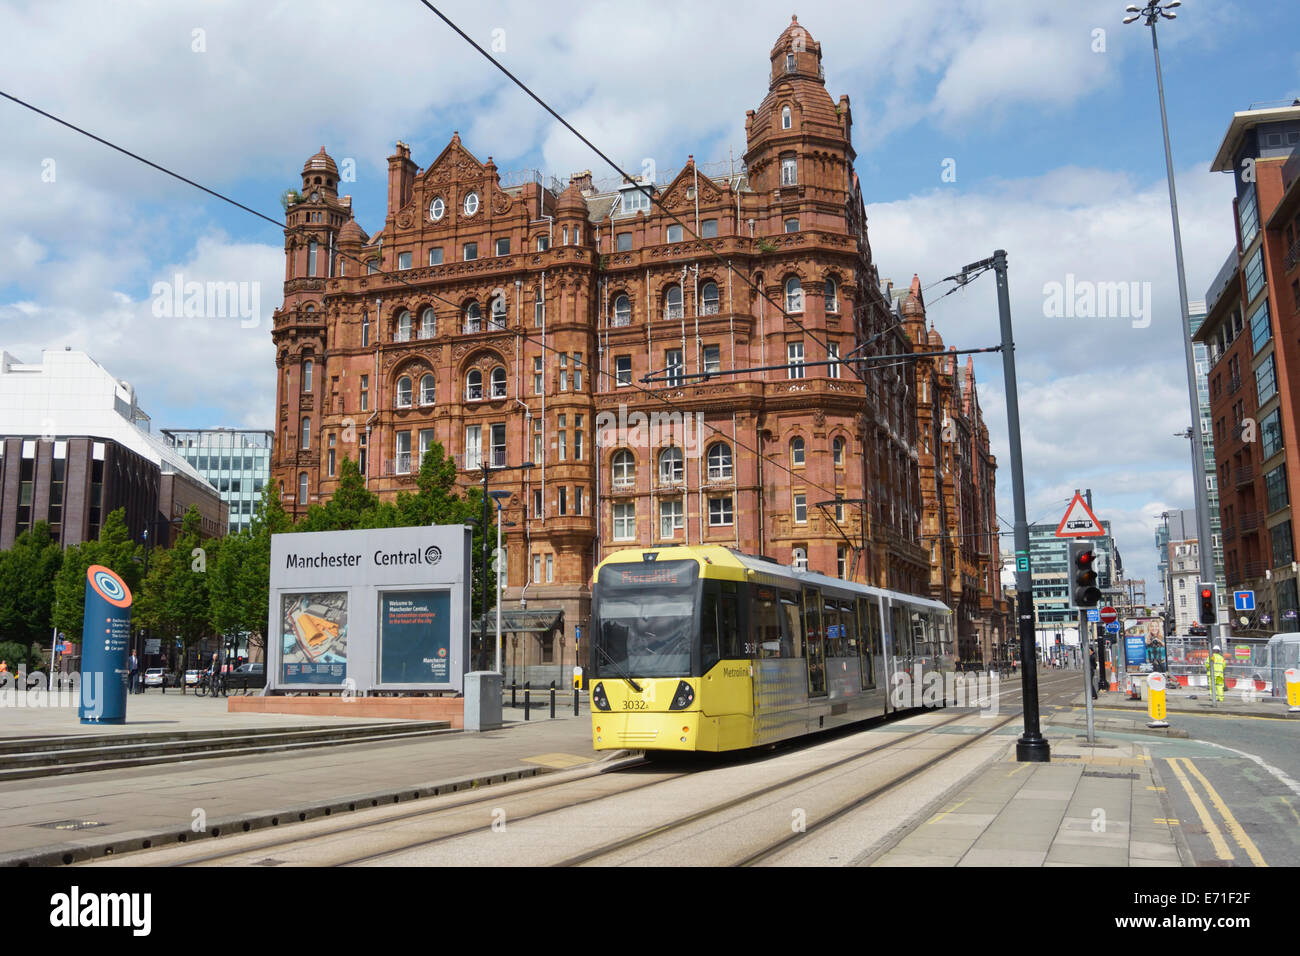 Metrolink tram with Midland hotel in the background in central Manchester. - Stock Image